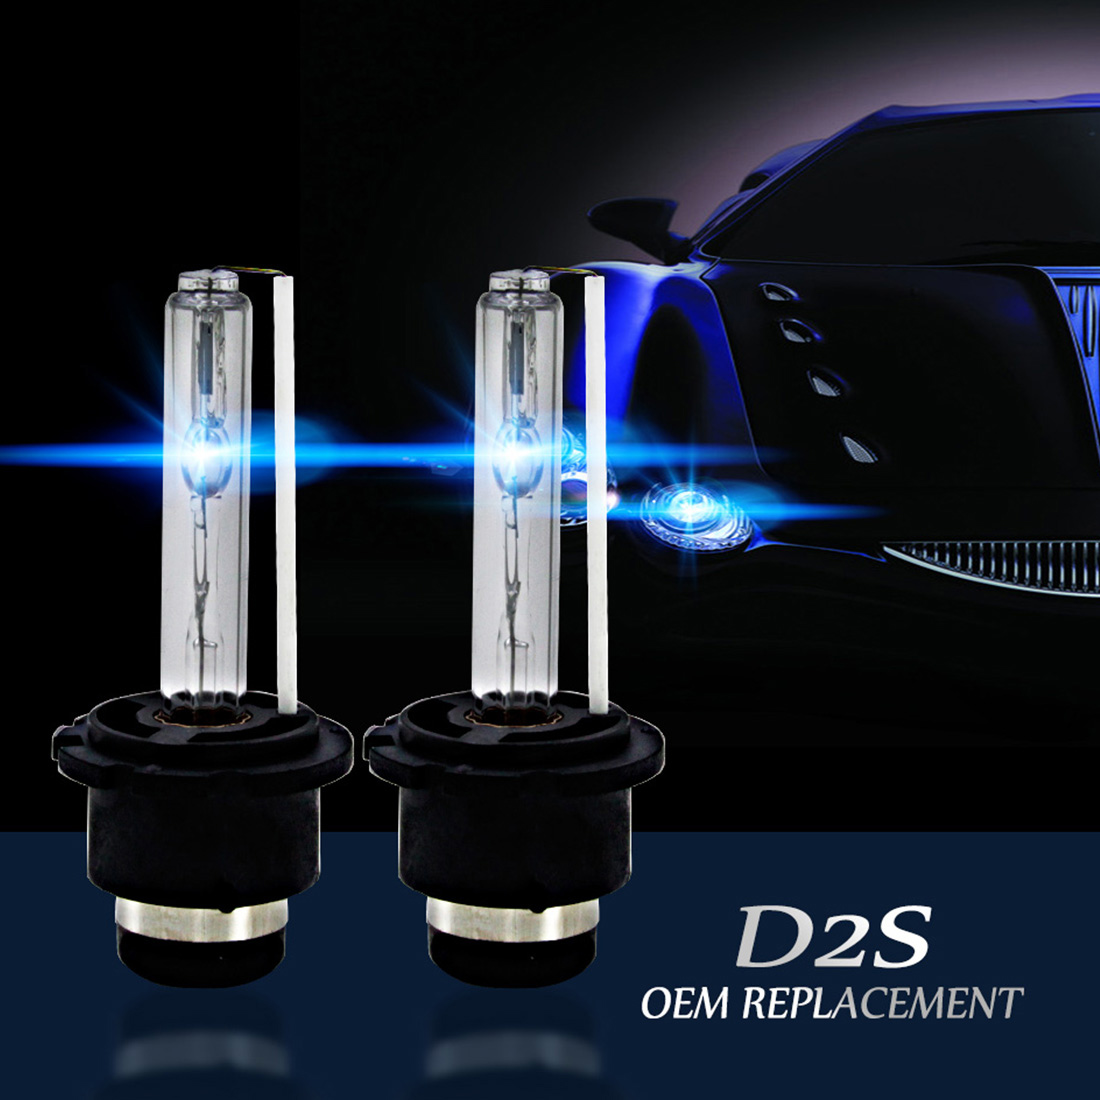 FangNymph Car Xenon D2S D2R ID Bulbs CBI HID Xenon Headlight Bulb D2S D2R Headlamp Light 4300K 5000K 6000K 8000K 10000K 12000K